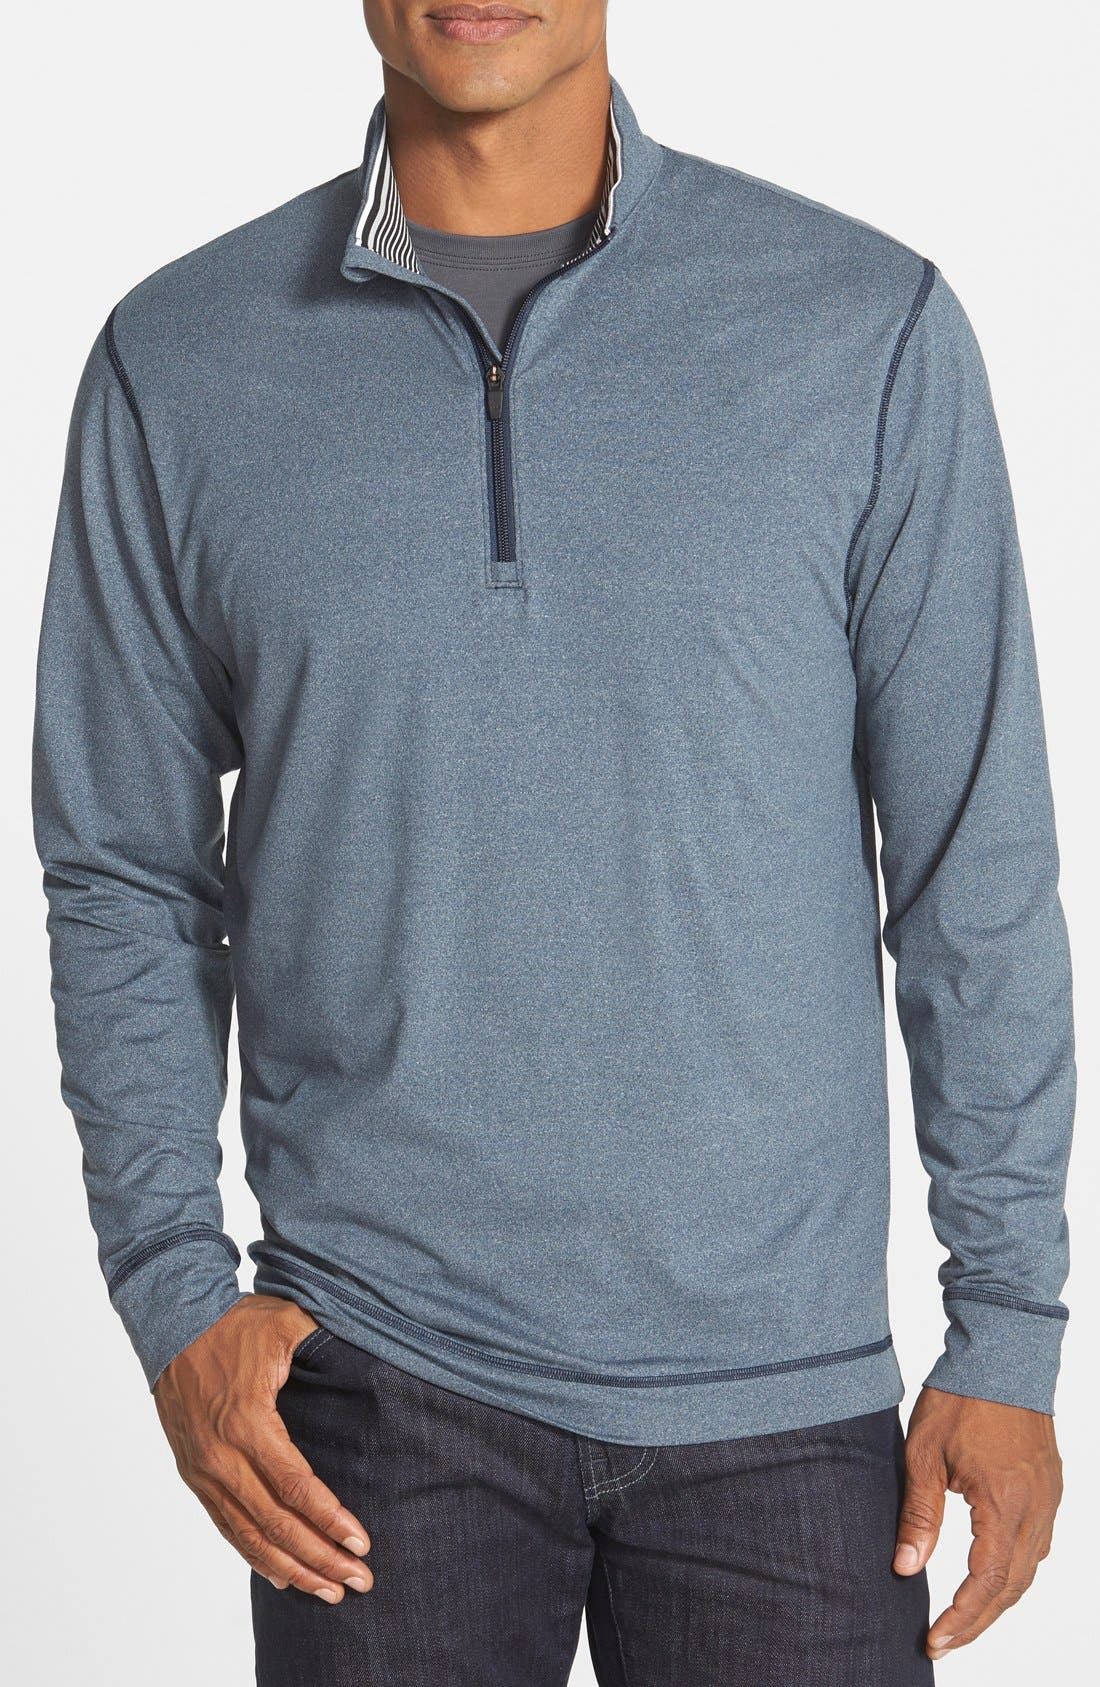 CUTTER & BUCK, 'Topspin' DryTec Half Zip Pullover, Main thumbnail 1, color, NAVY HEATHER